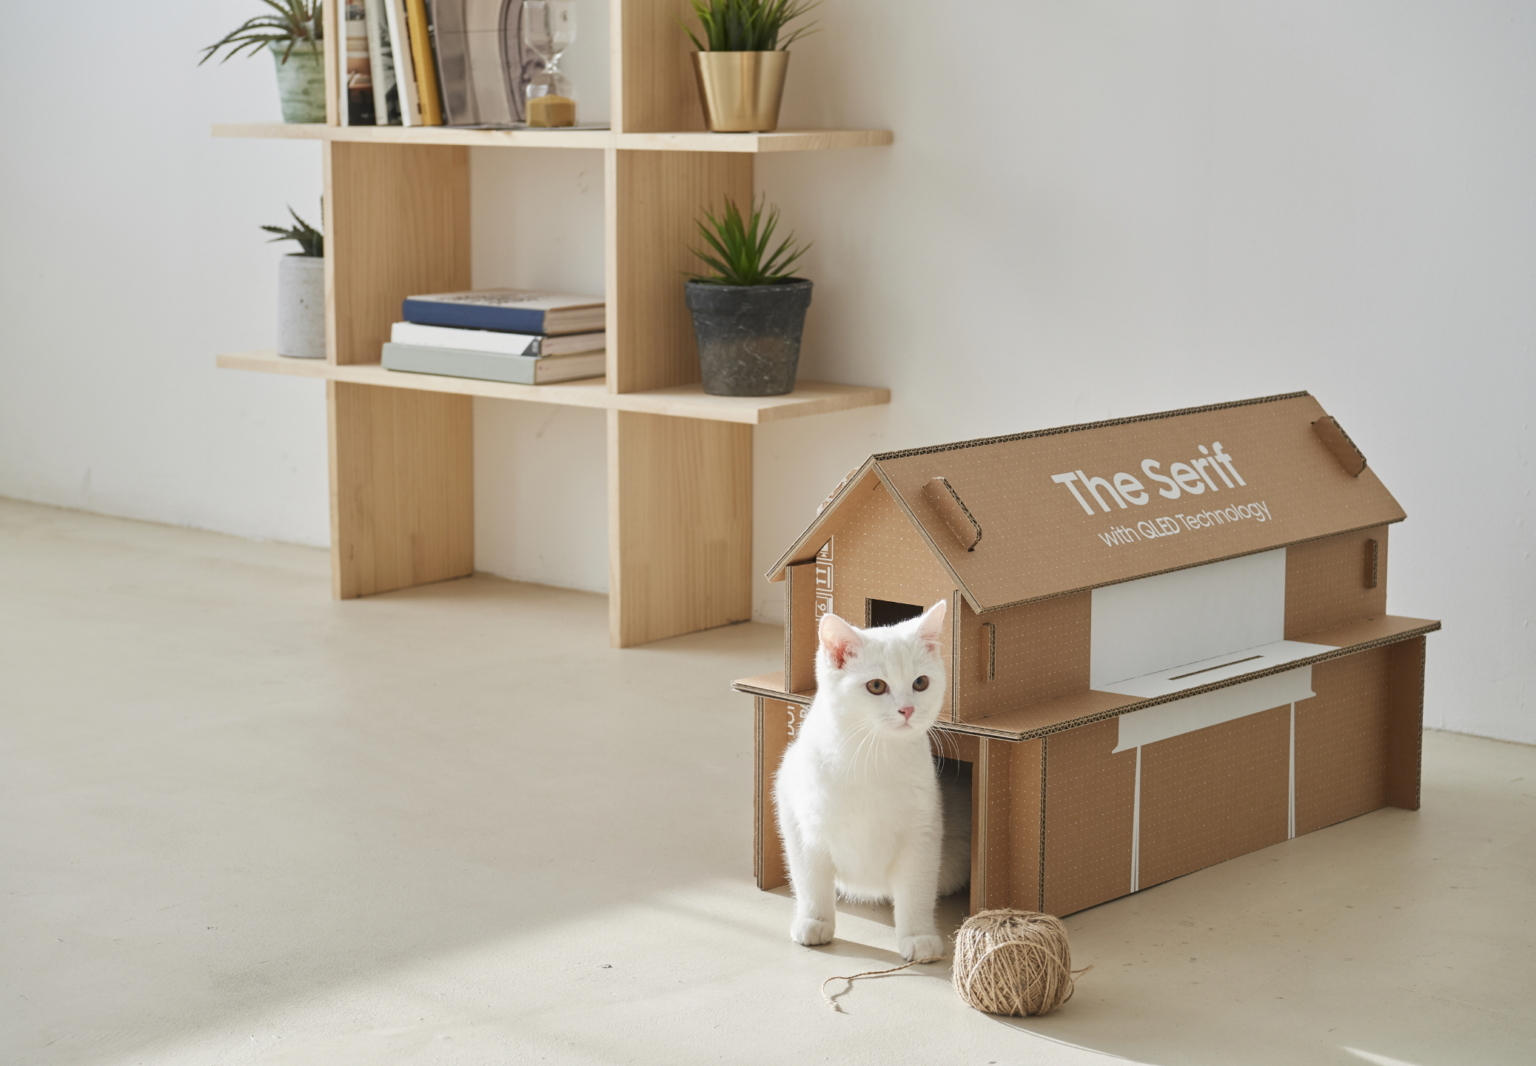 A Better Box: DIY Projects from Samsung's New Cardboard Packaging